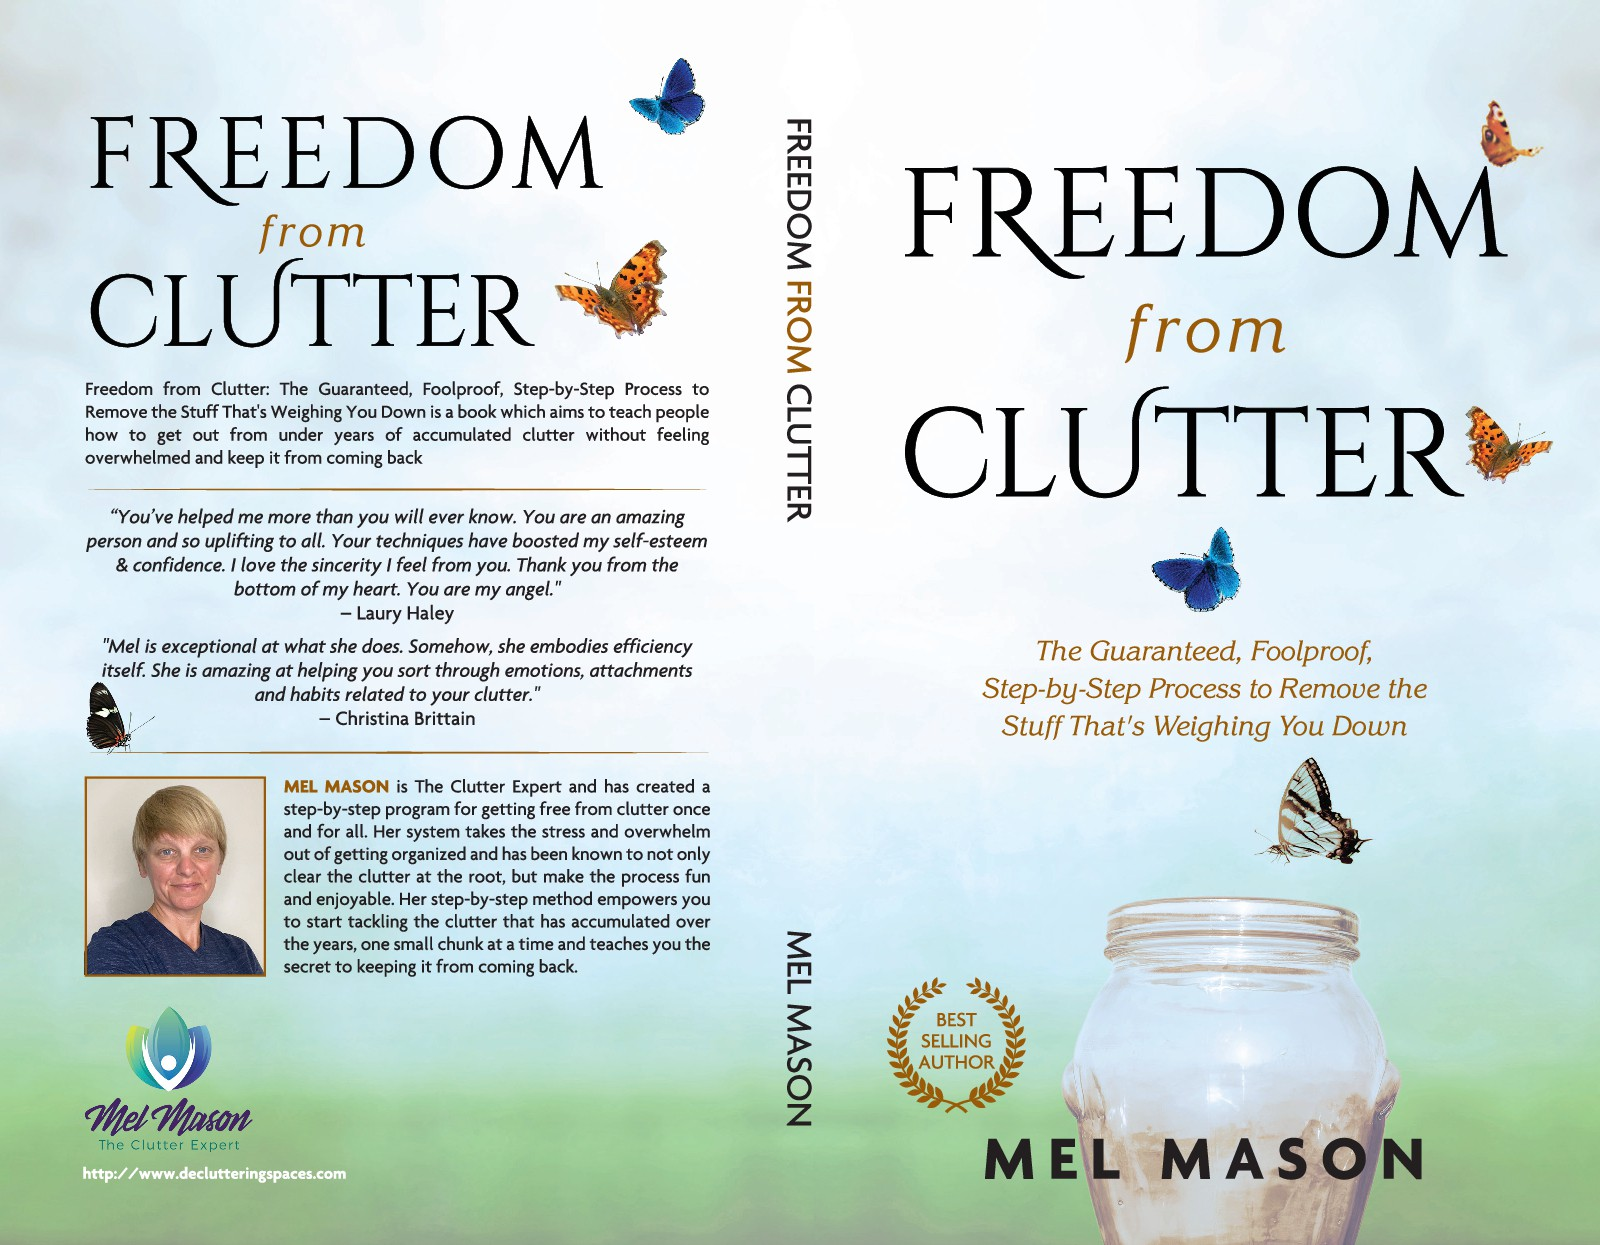 New book on clutter needs appealing, catchy cover